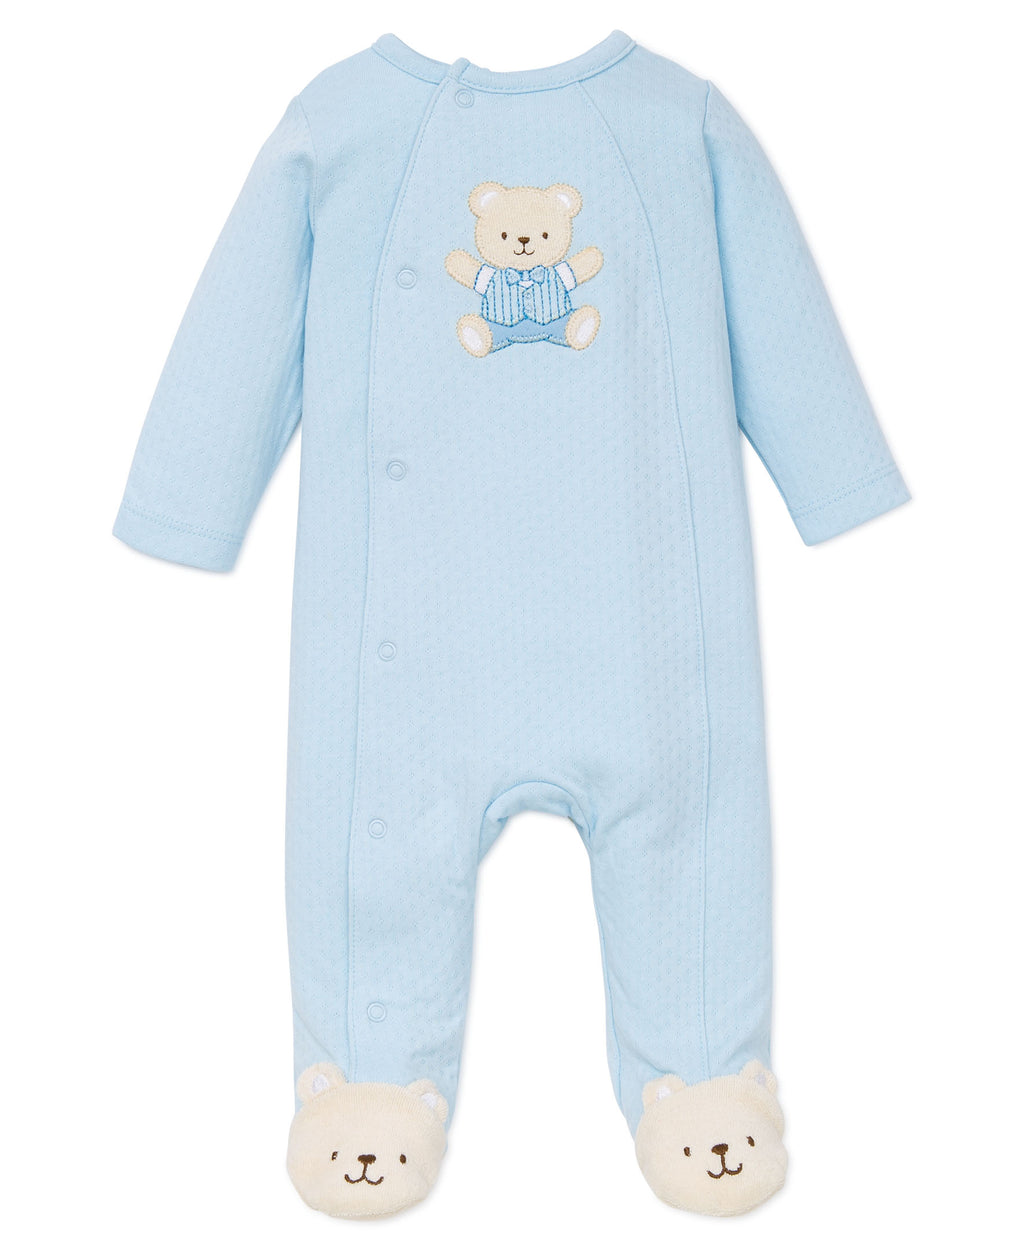 Cute Bear Footed One-Piece